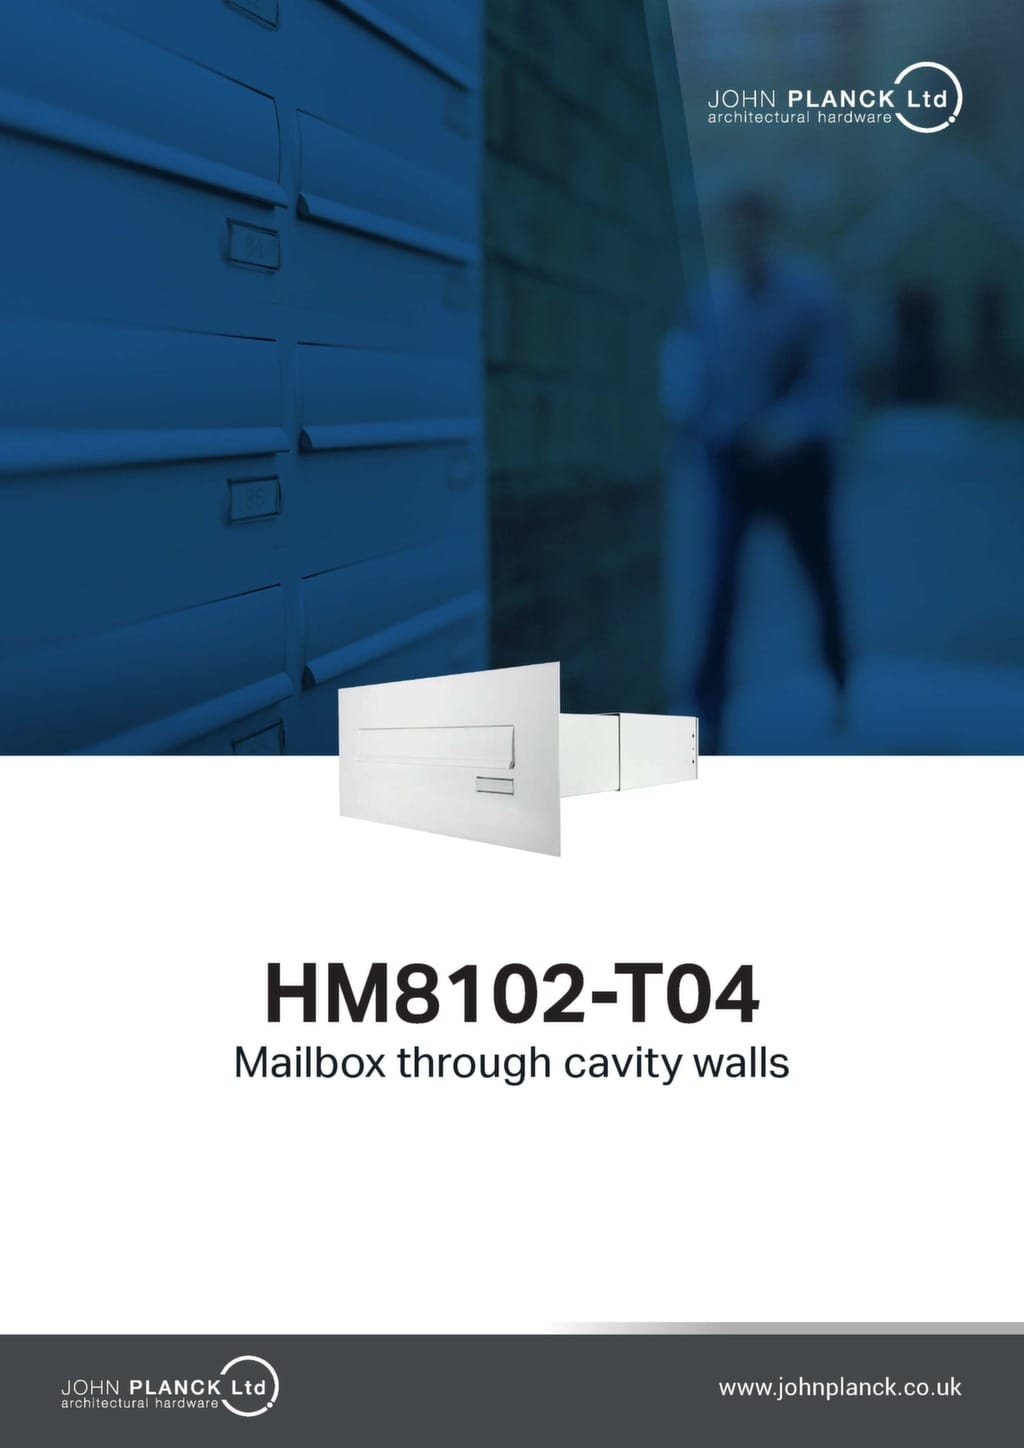 HM8102-T04